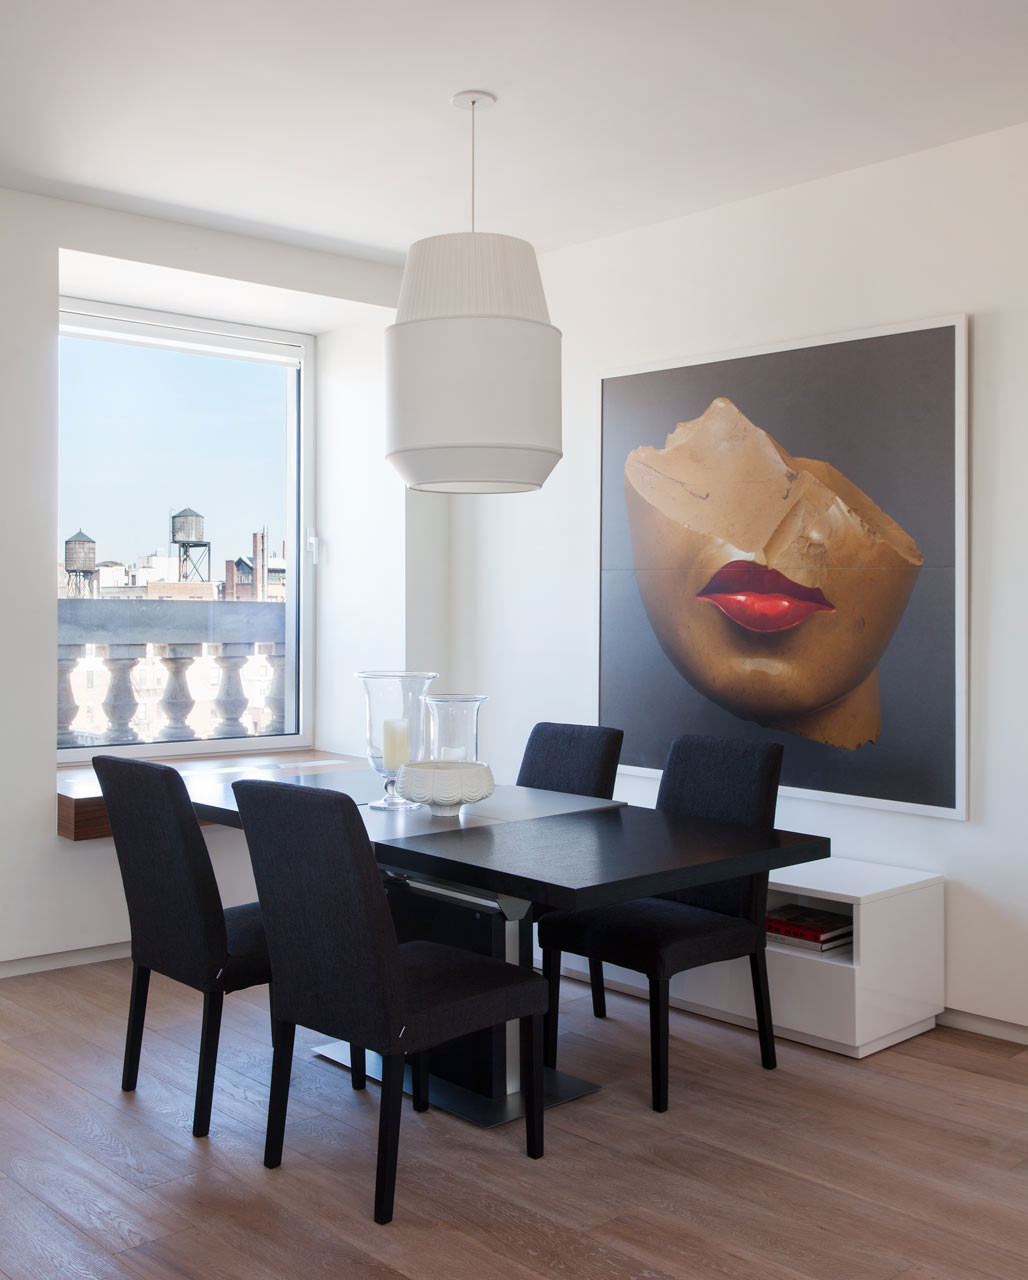 Best ideas about Dining Room Wall Art . Save or Pin How To Add The Wow Factor Through Modern Wall Art Now.